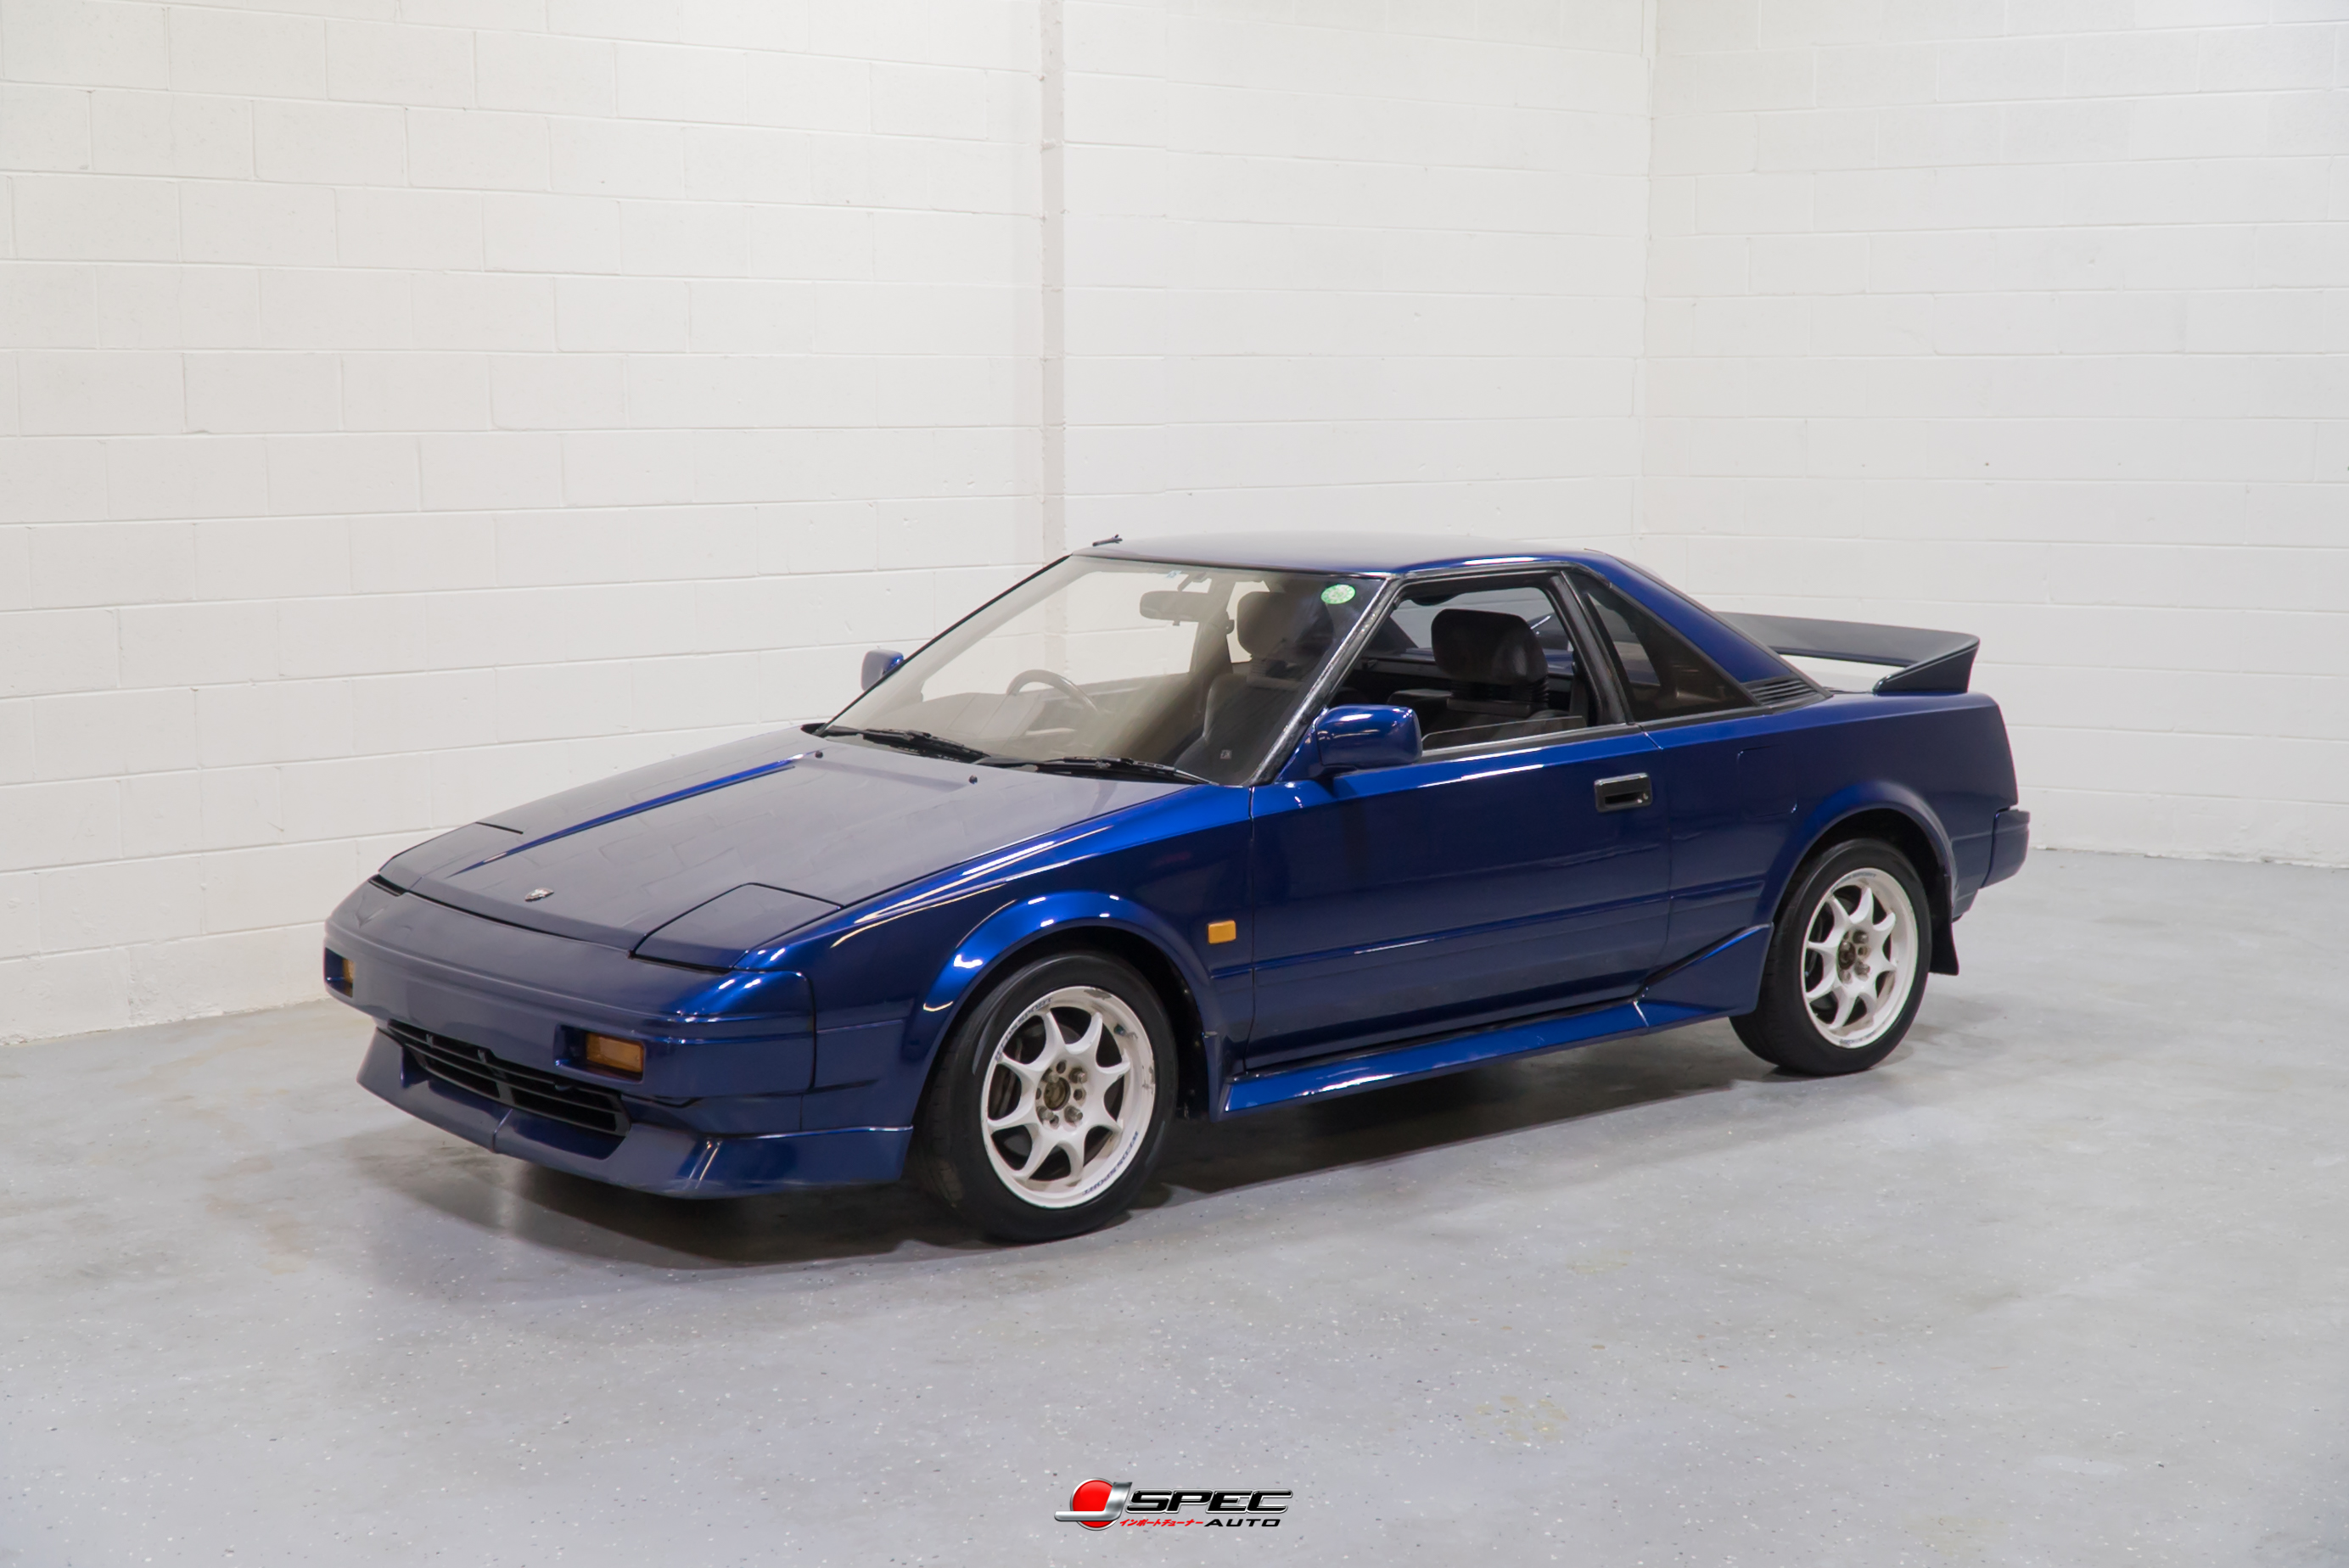 100 Legally Imported 1987 Toyota Mr2 For Sale In The Usa